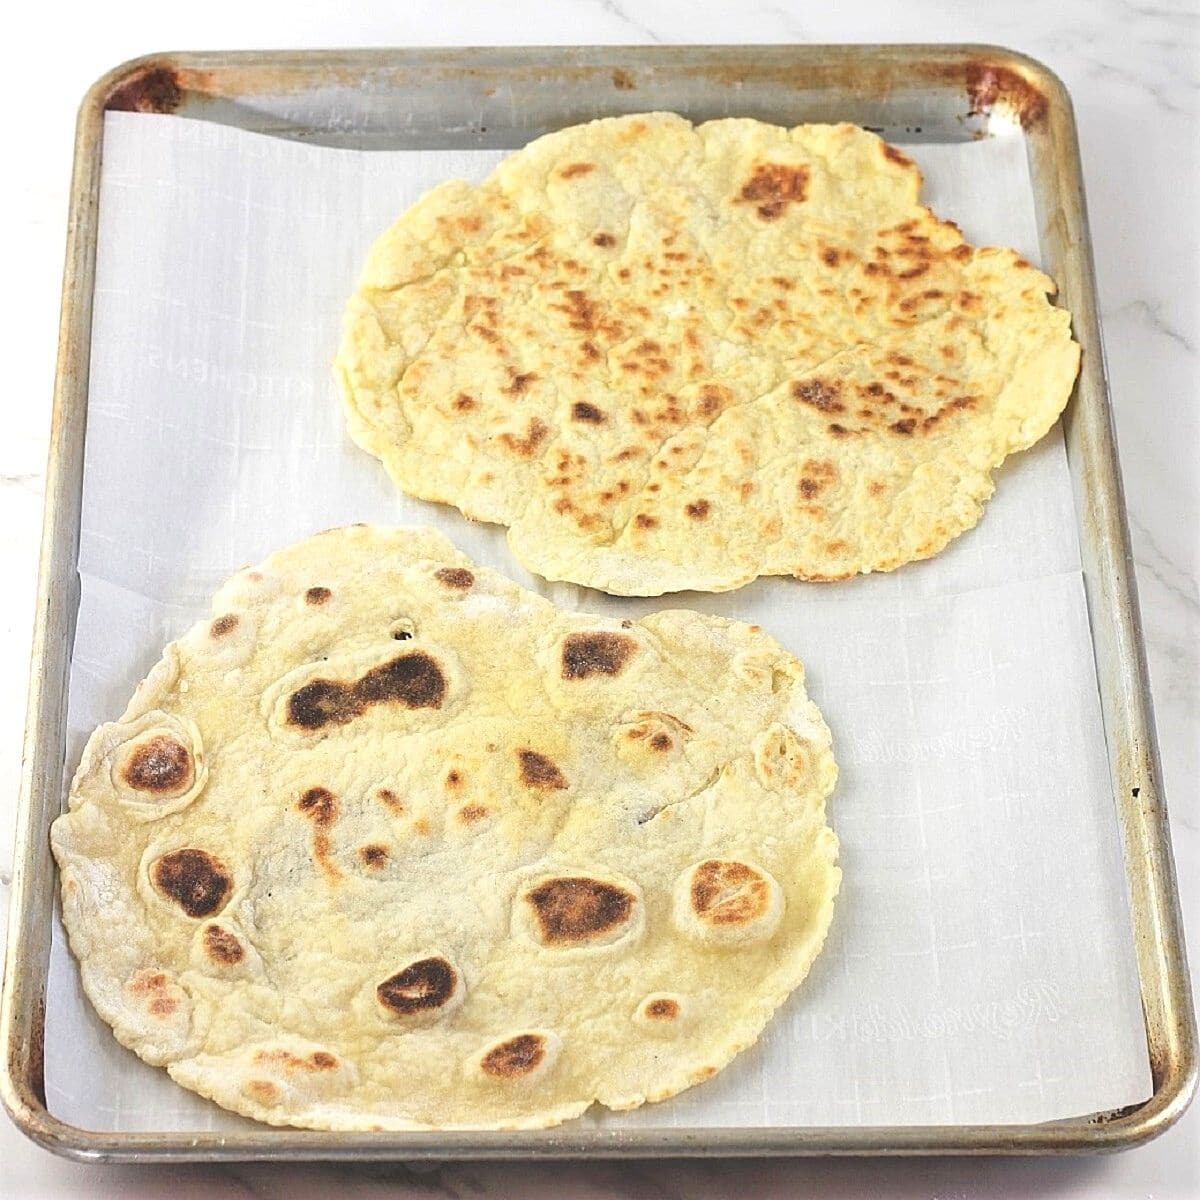 two flatbreads on a baking sheet lined with parchment paper